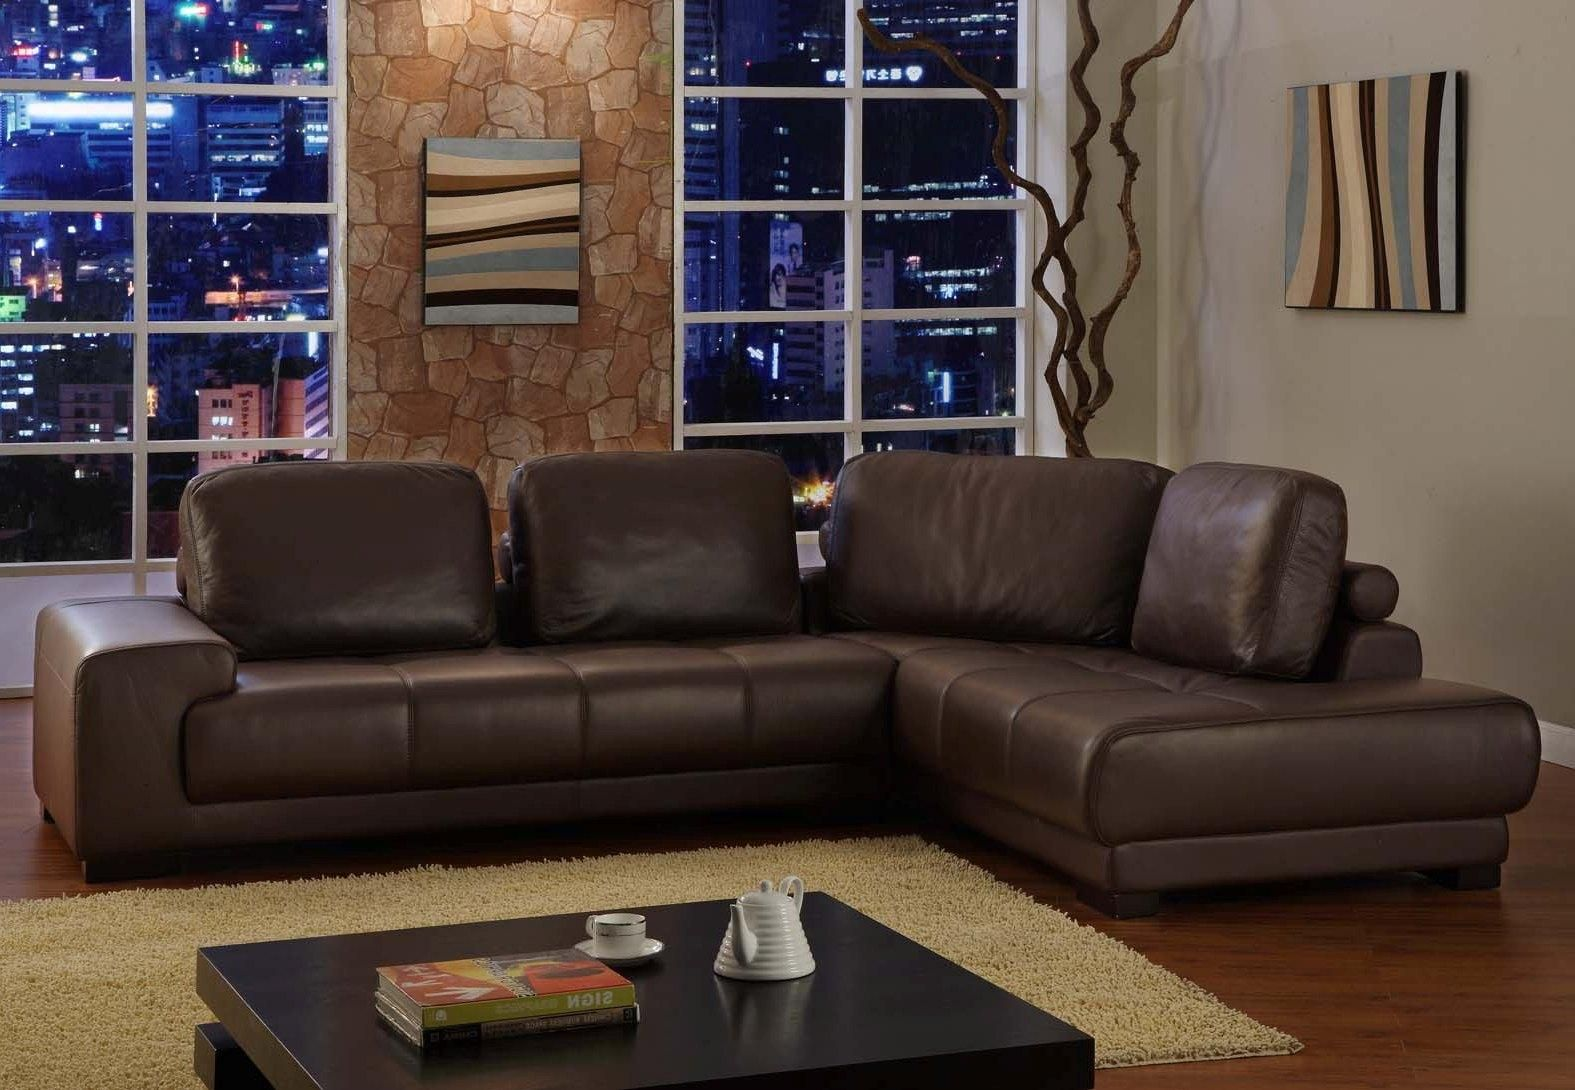 Sketch Of Sectional Sofa Clearance The Best Way To Get High Quality Sofa In Affordable Price Sectional Sofa Sofa Clearance Sectional Couch